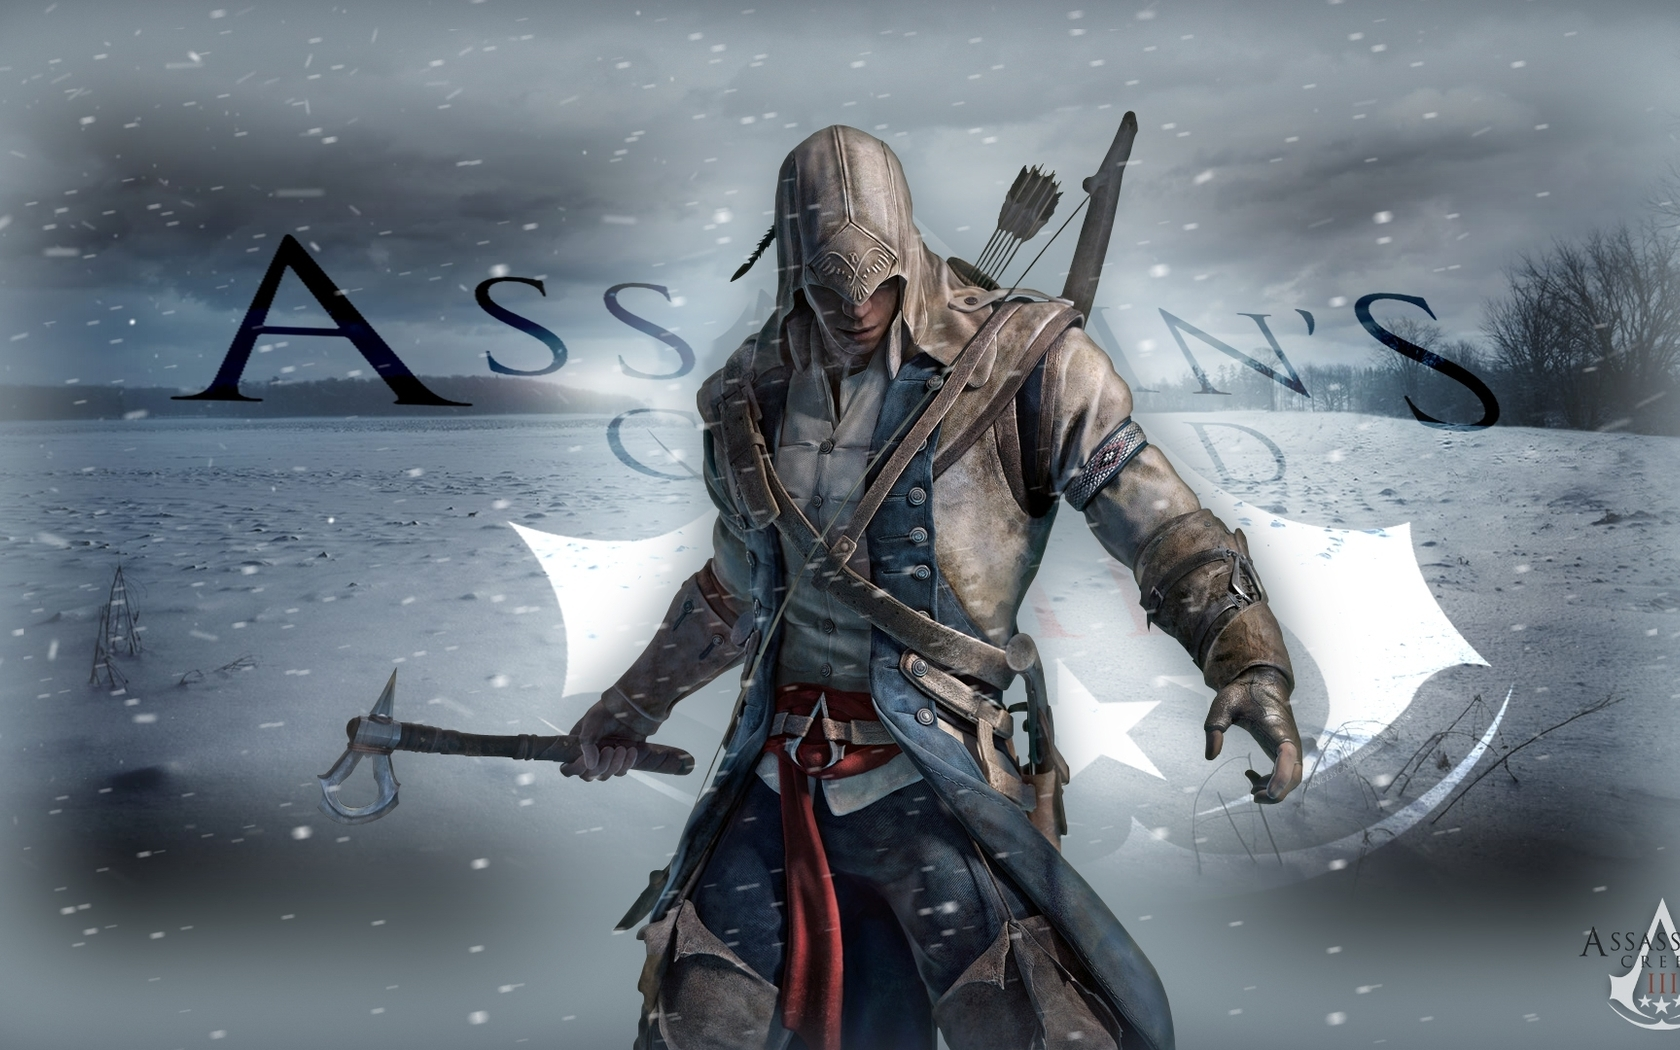 Assassins creed 3 deluxe edition6 dlc скачать торрент - 13